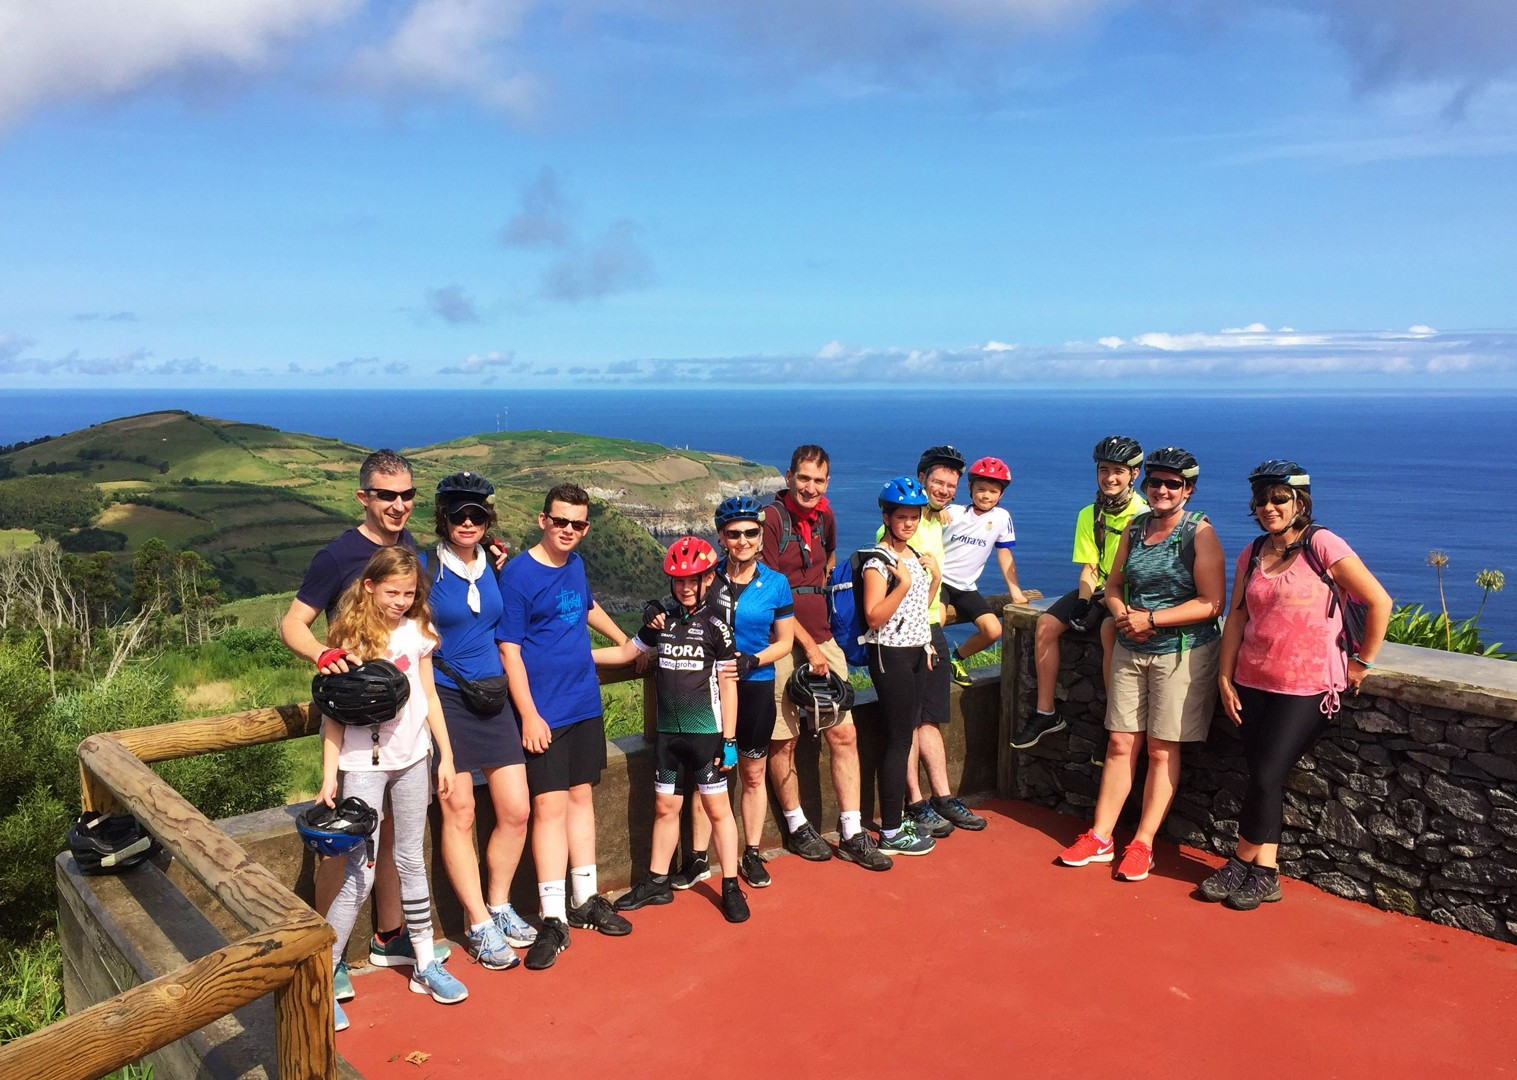 AZA17FShelly Hunt.jpg - The Azores - Azores Adventures - Guided Family Cycling Holiday - Family Cycling